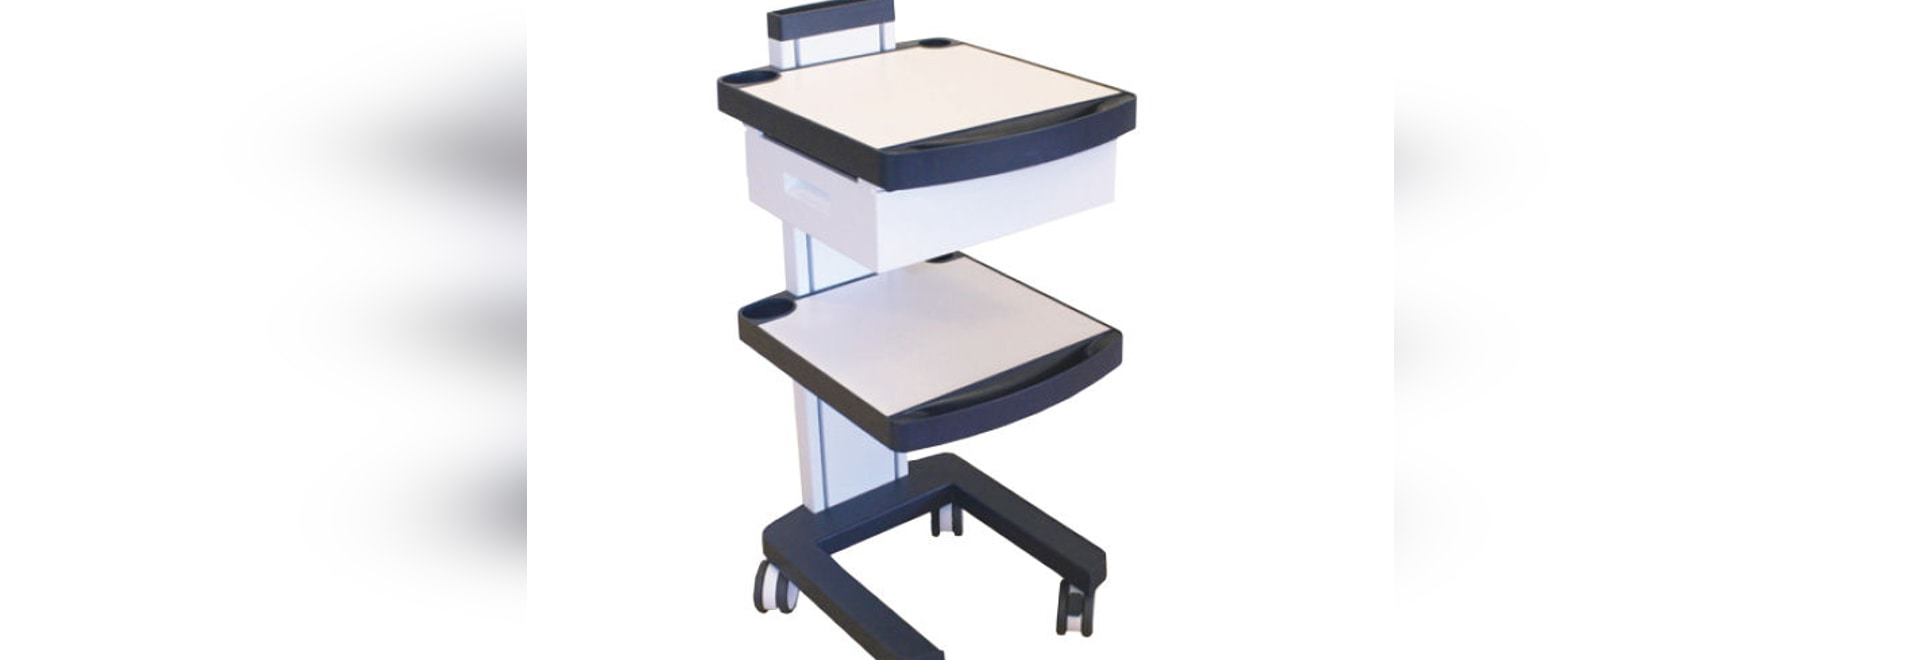 NEW: medical device cart by Enraf-Nonius